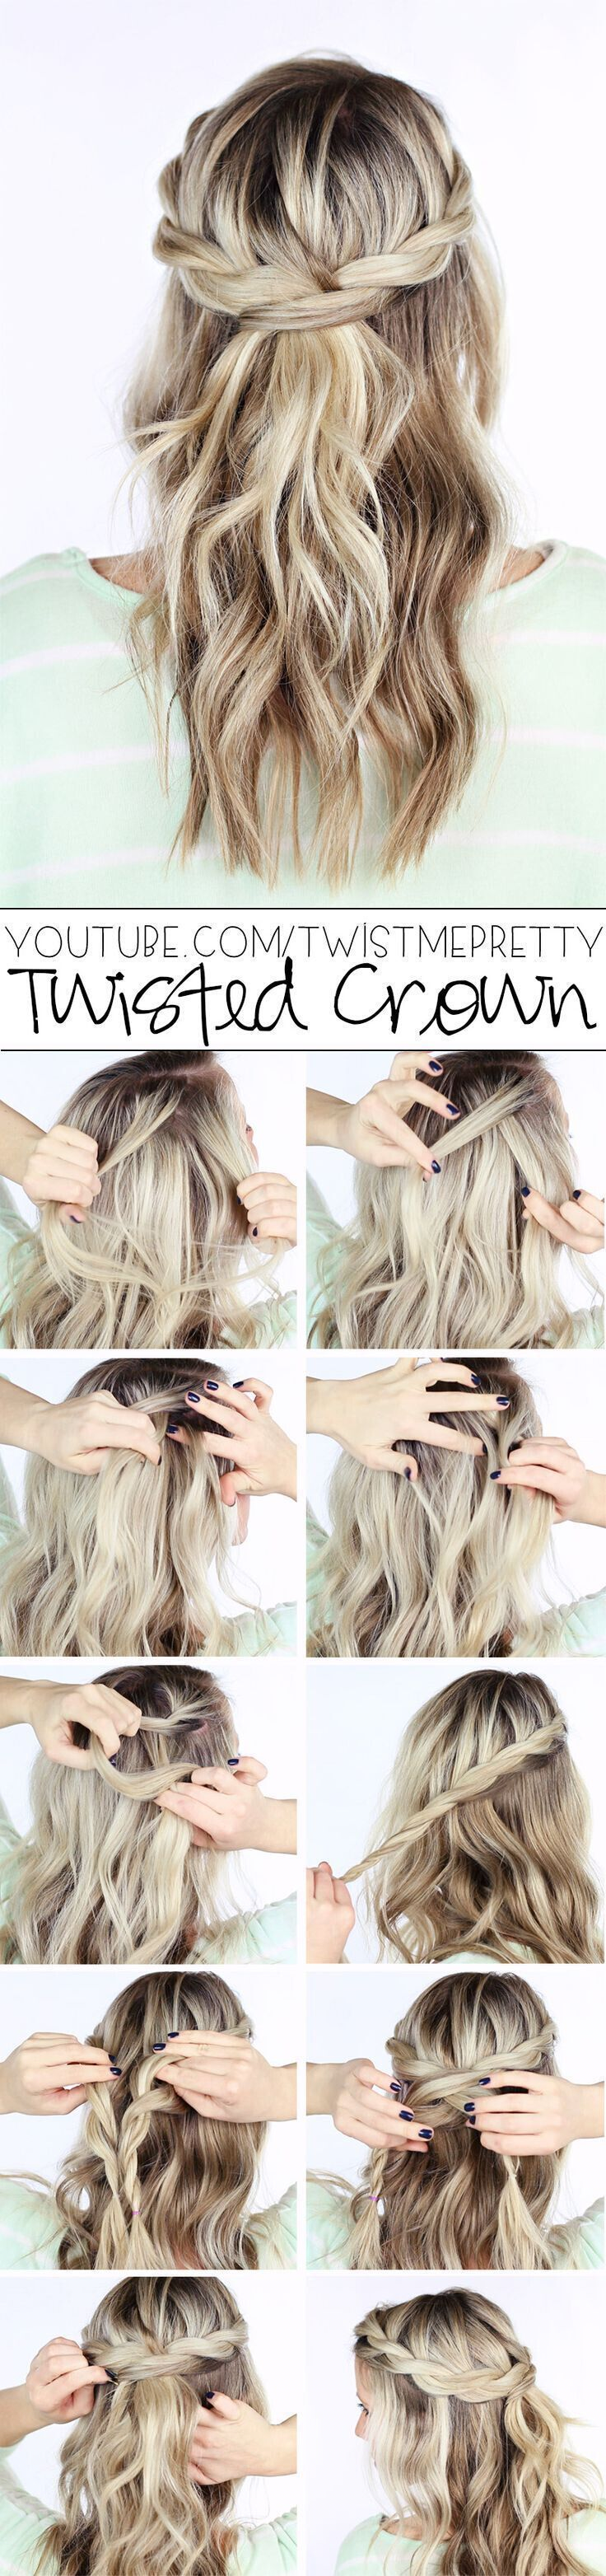 DIY Wedding Hairstyle - Twisted crown braid half up half down hairstyle